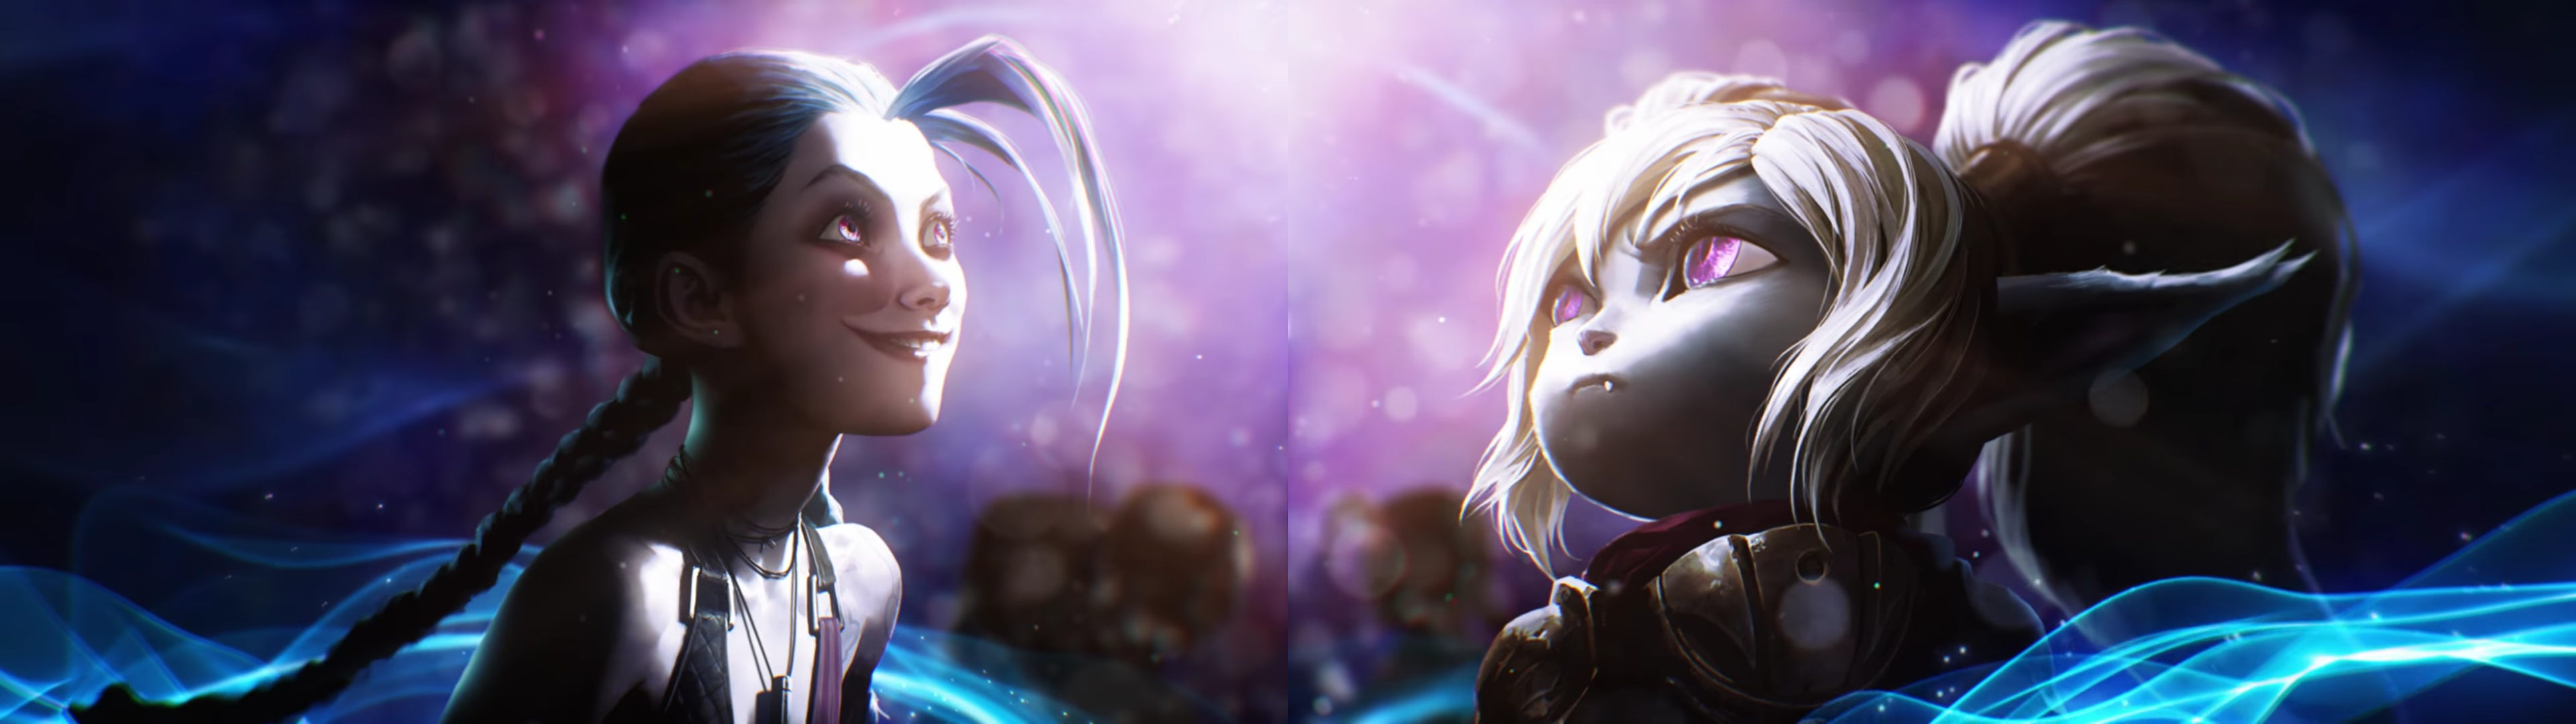 Dual screen wallpaper (3840x1080) from the LoL